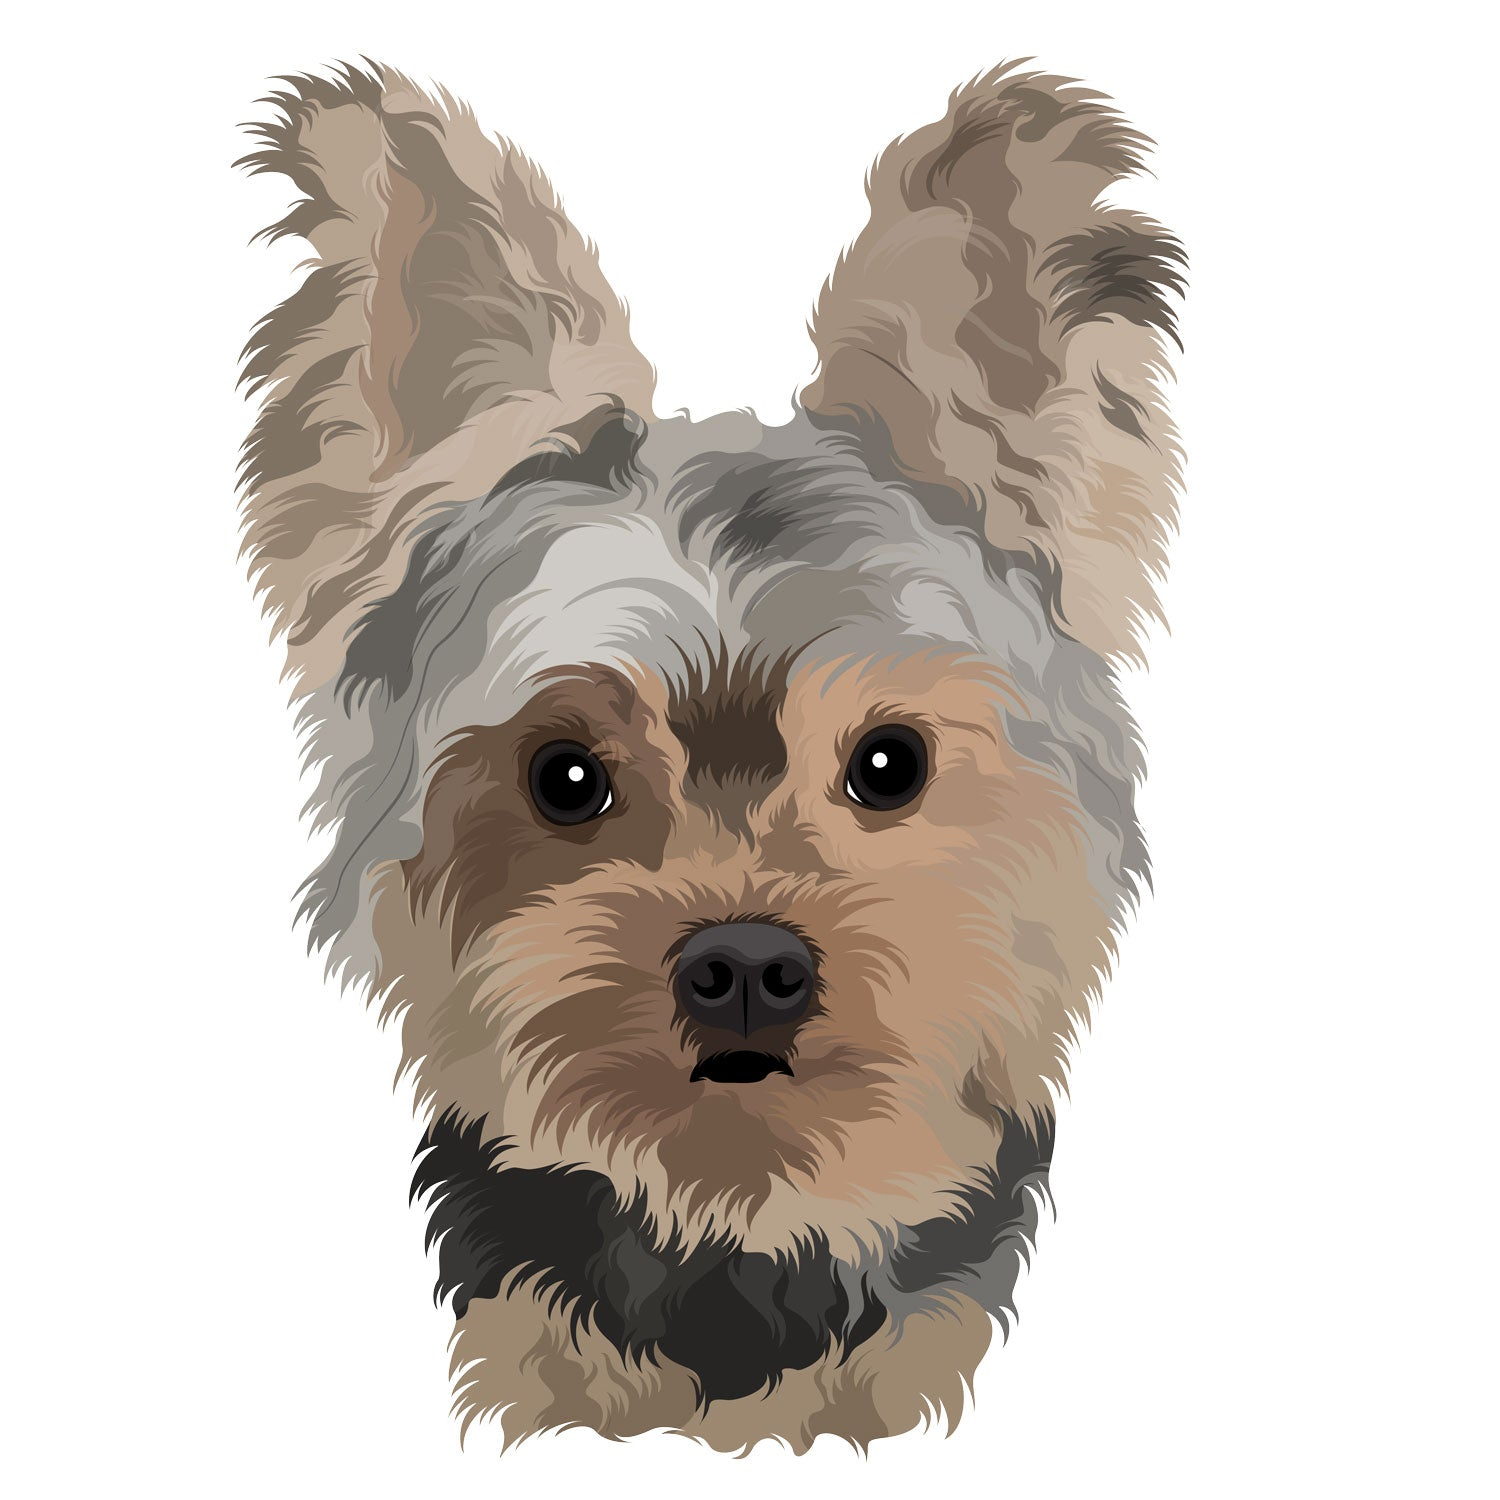 Digital Art File of Your Pet